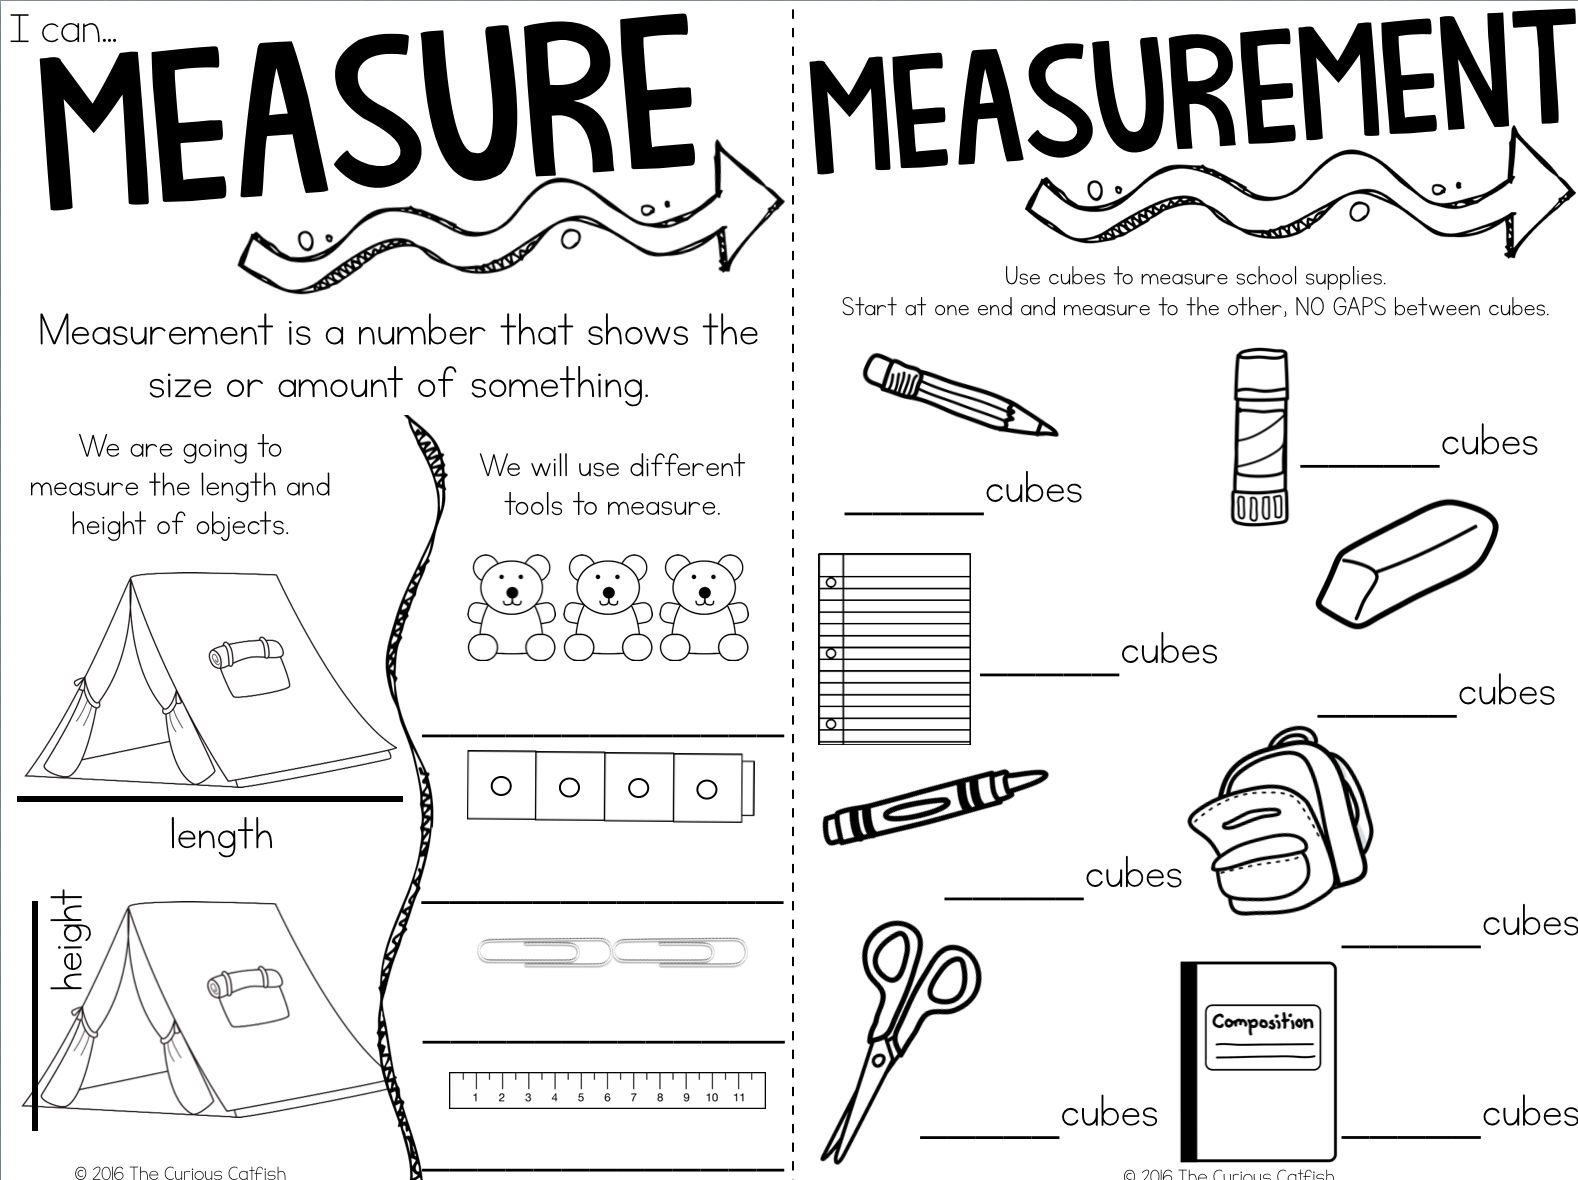 Get this activity and many others at: https://www.teacherspayteachers.com/Product/Measurement-1md1-1md2-2560670